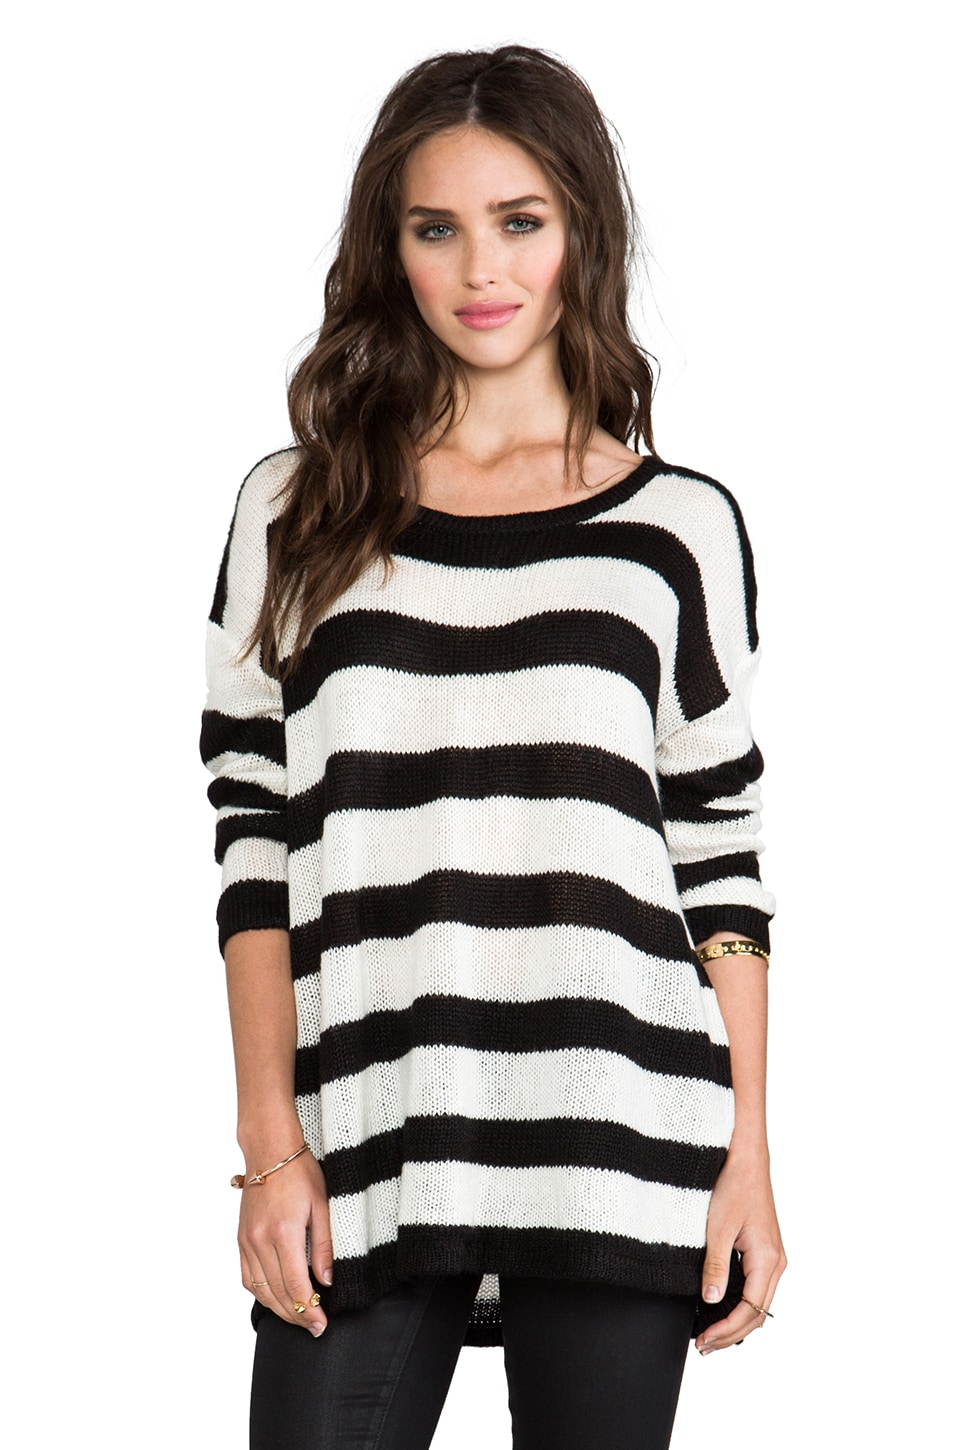 MINKPINK The London Look Pullover in Black/White